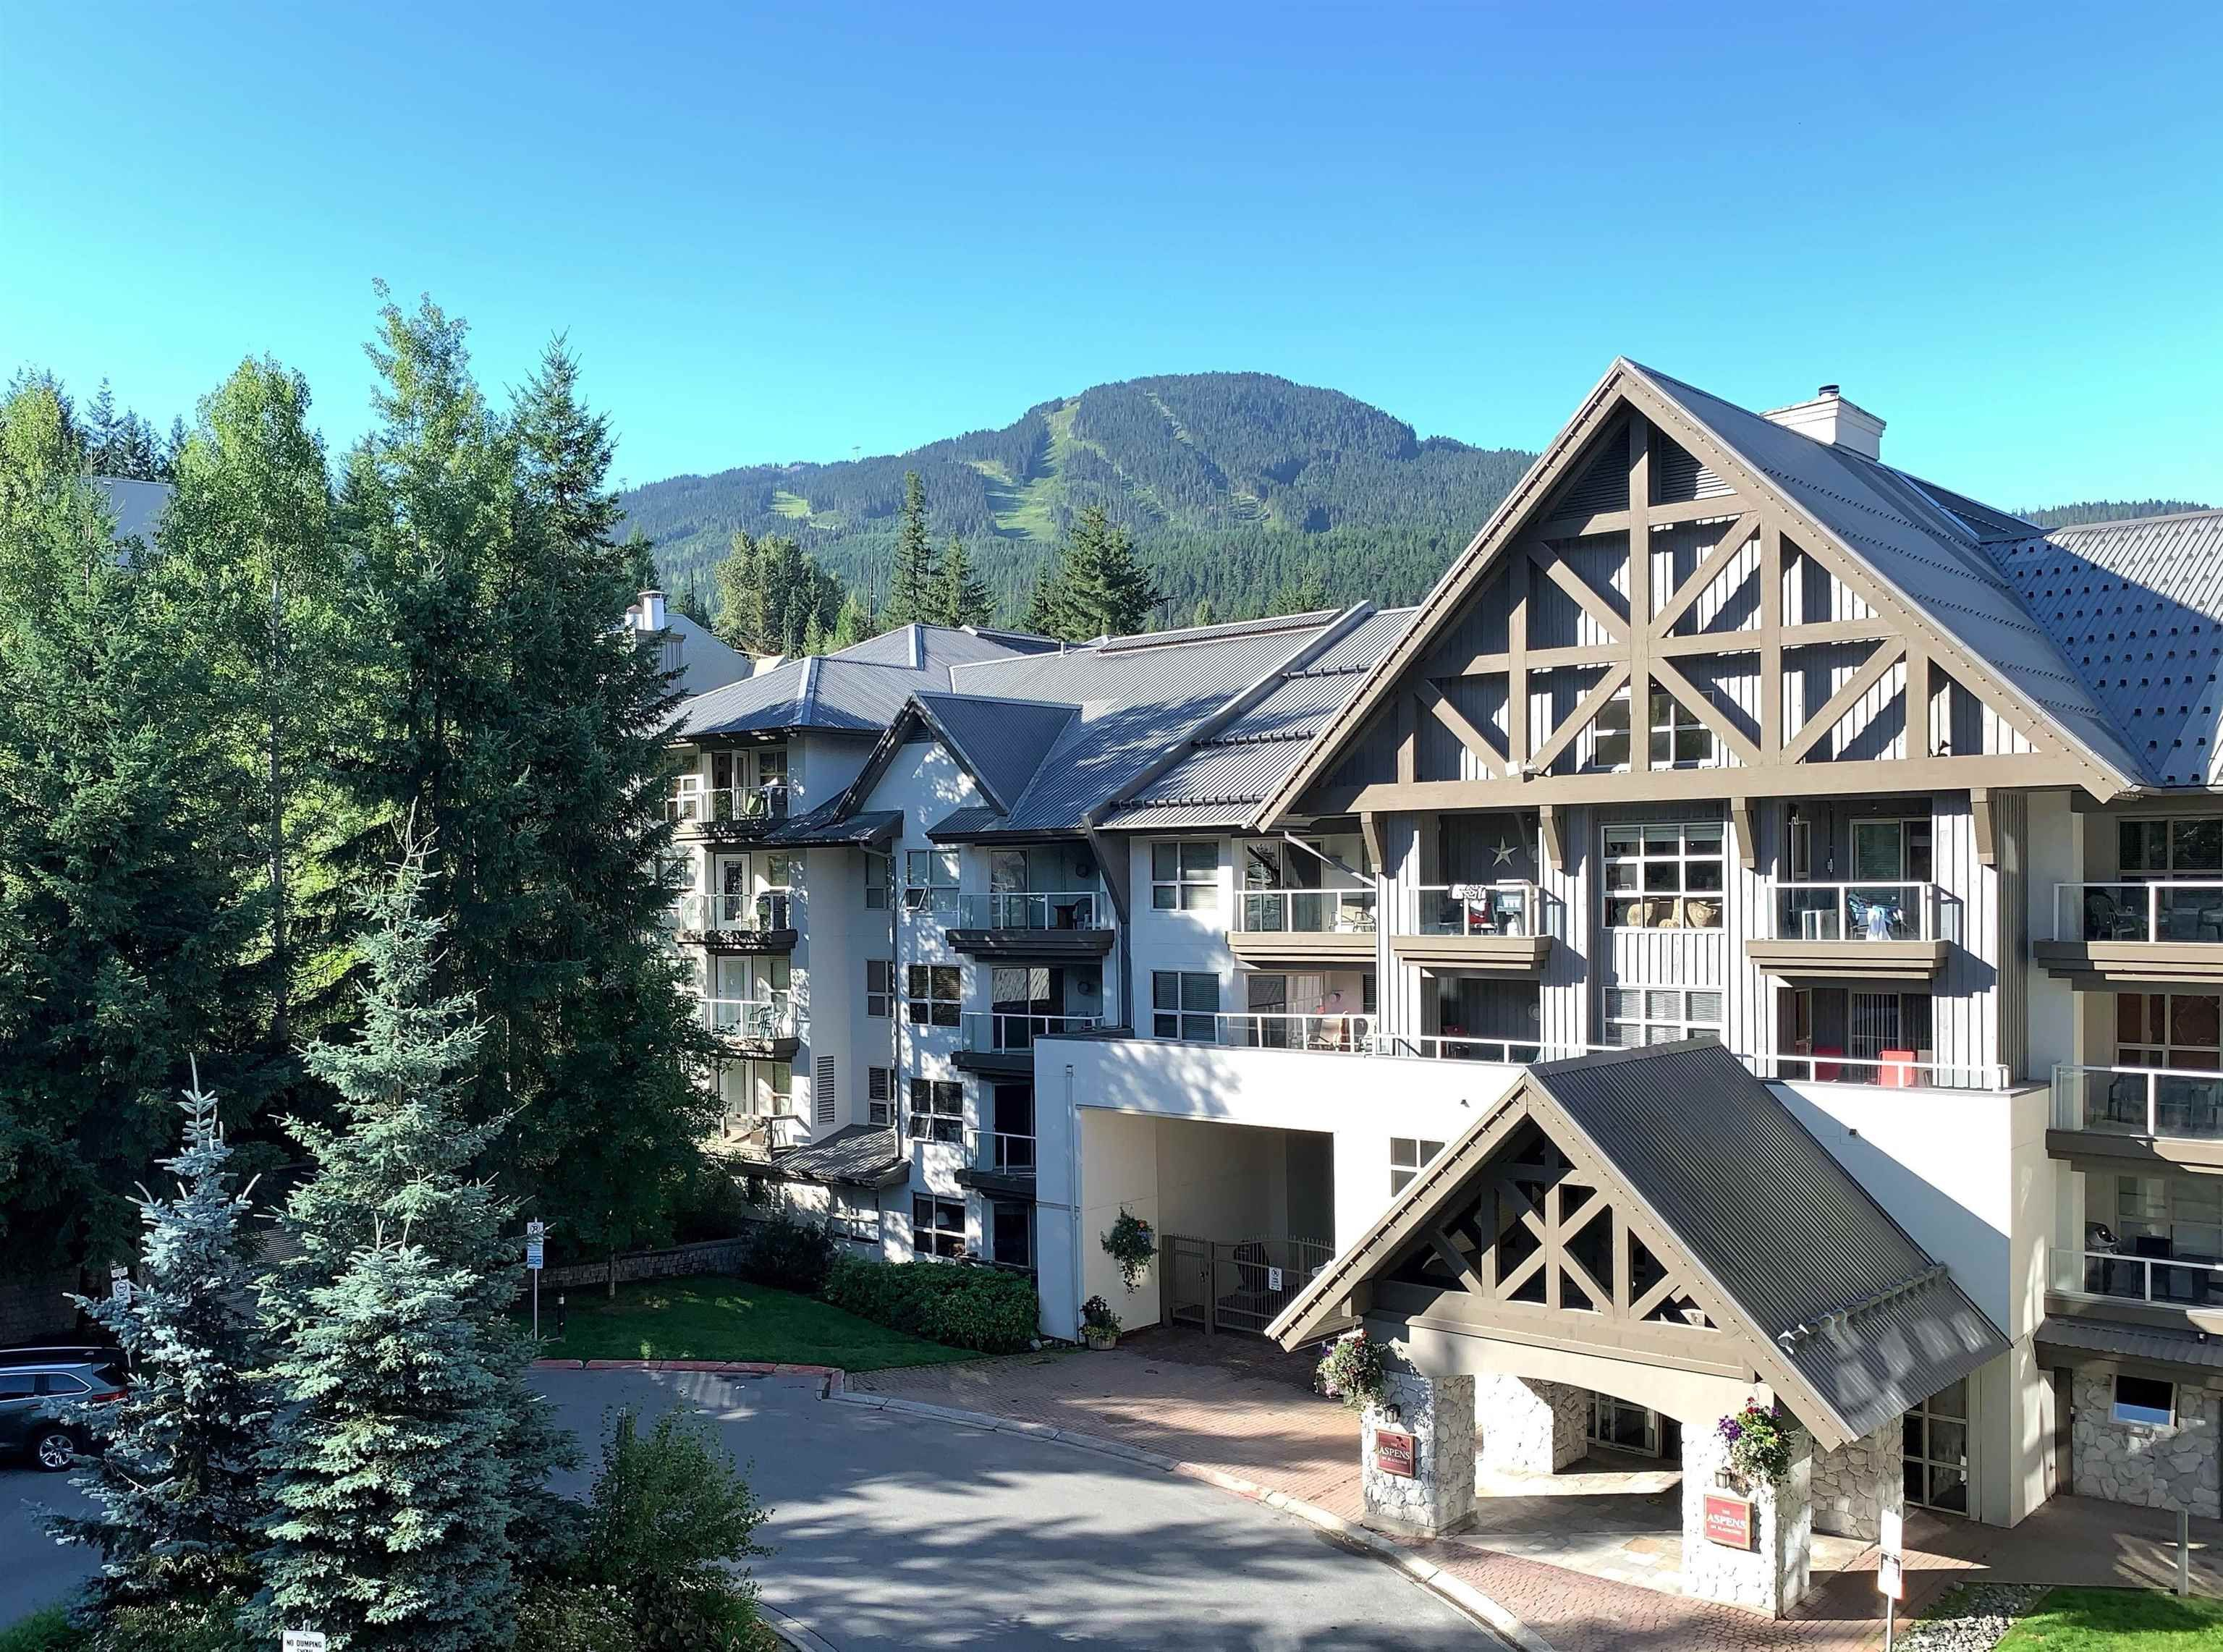 """Main Photo: 101 4800 SPEARHEAD Drive in Whistler: Benchlands Condo for sale in """"The Aspens"""" : MLS®# R2623932"""